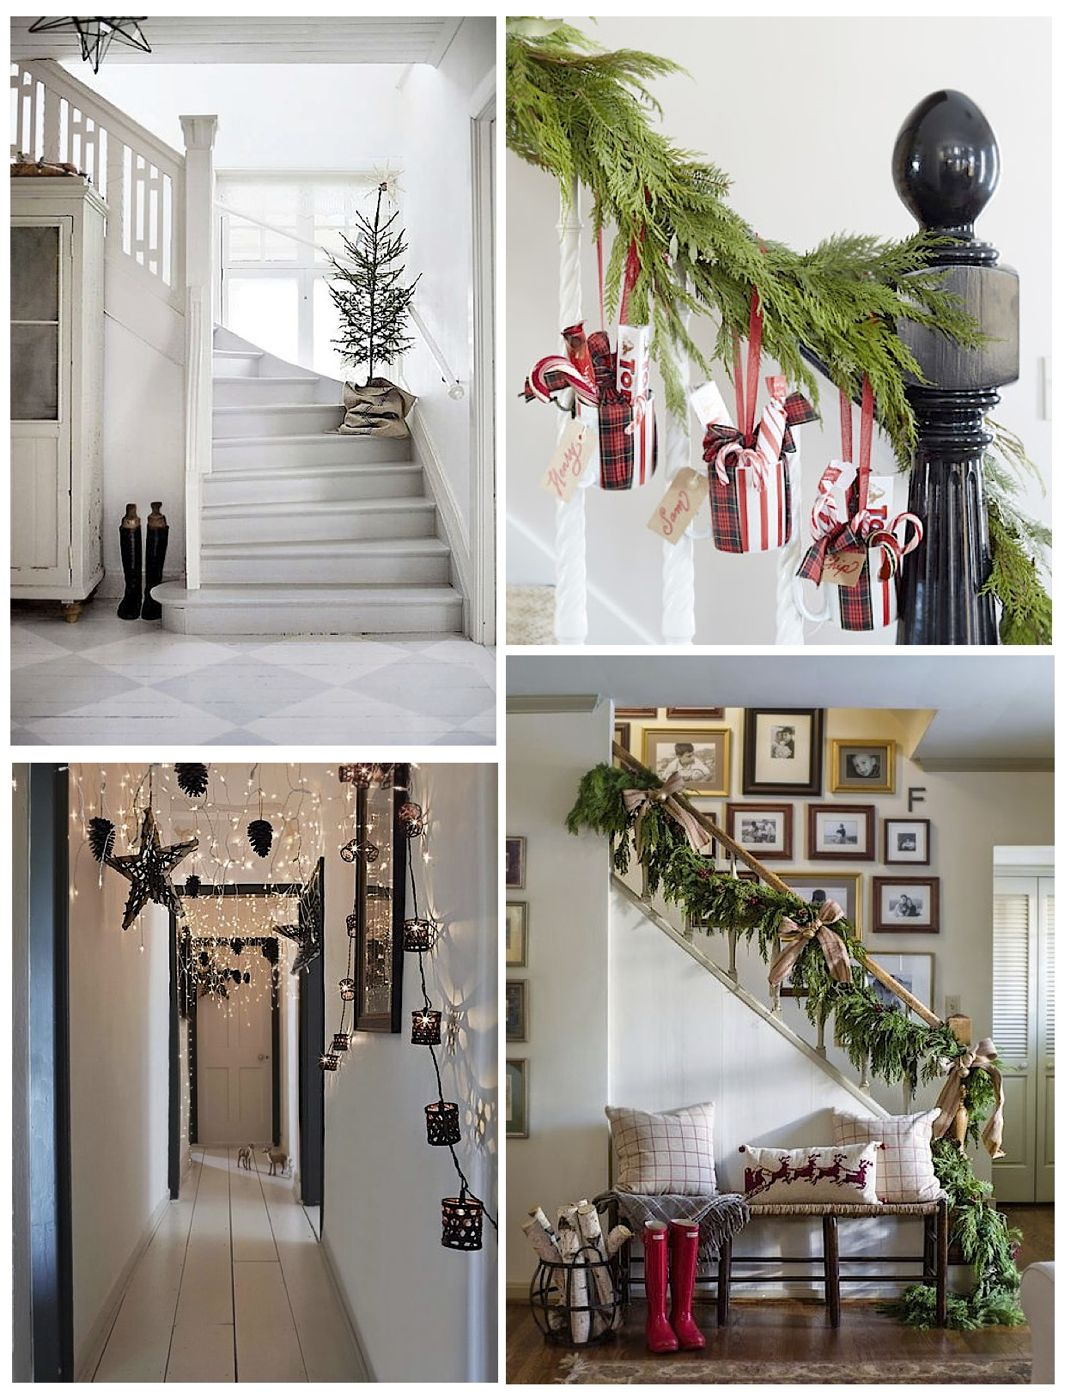 Decorate Your Home For Christmas get your home ready with these 14 christmas hallway ideas - style